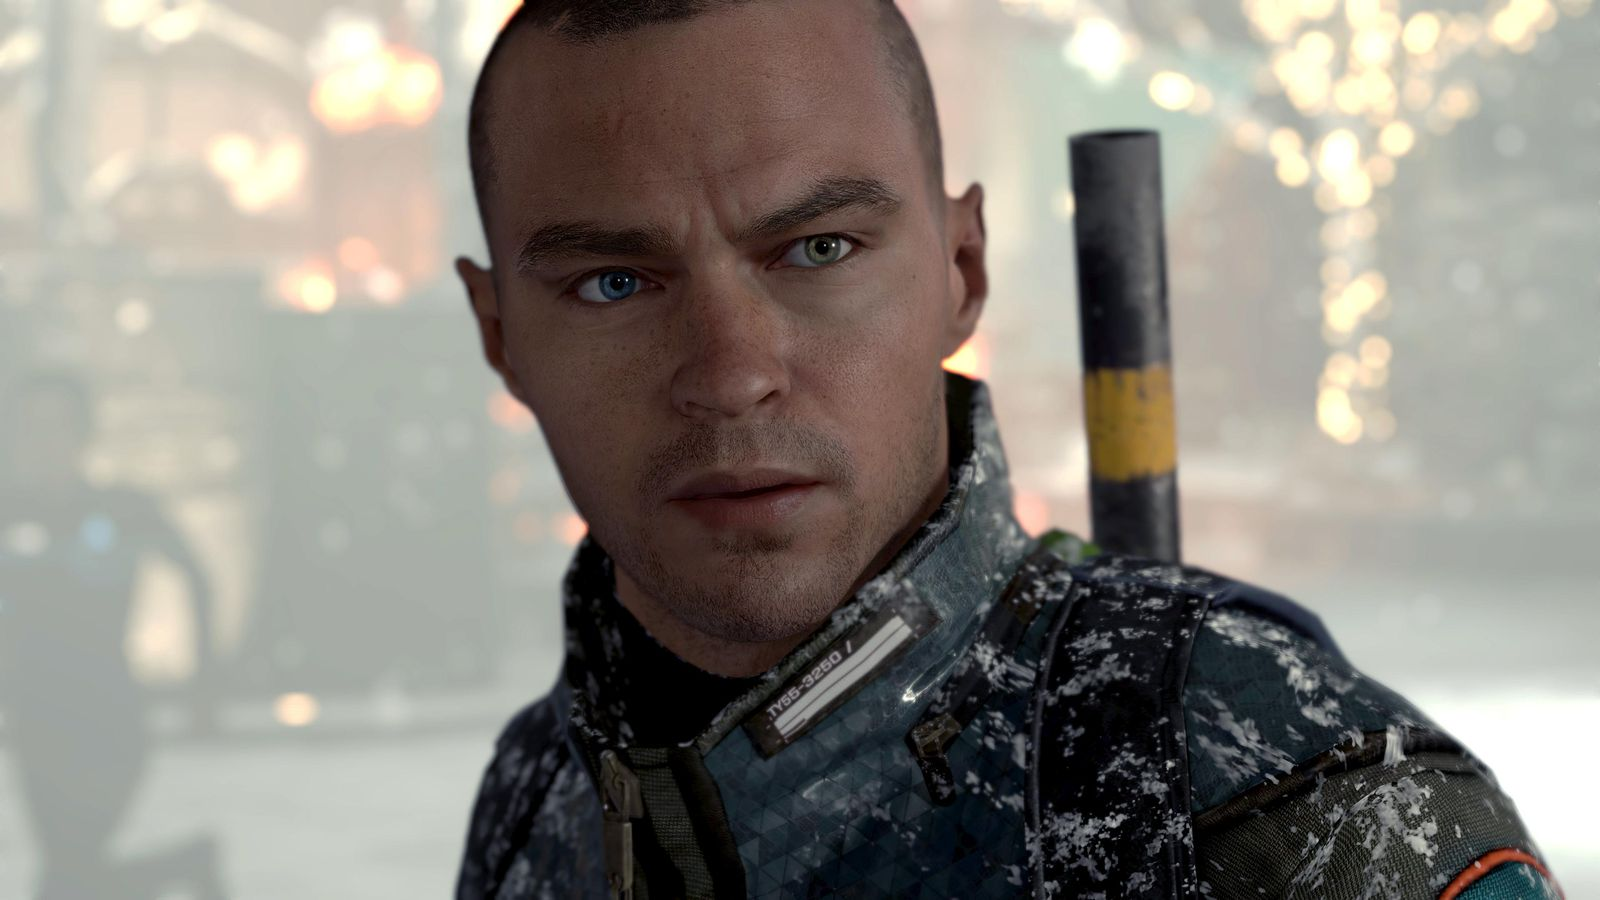 Detroit: Become Human director wants players to confront the game's violence